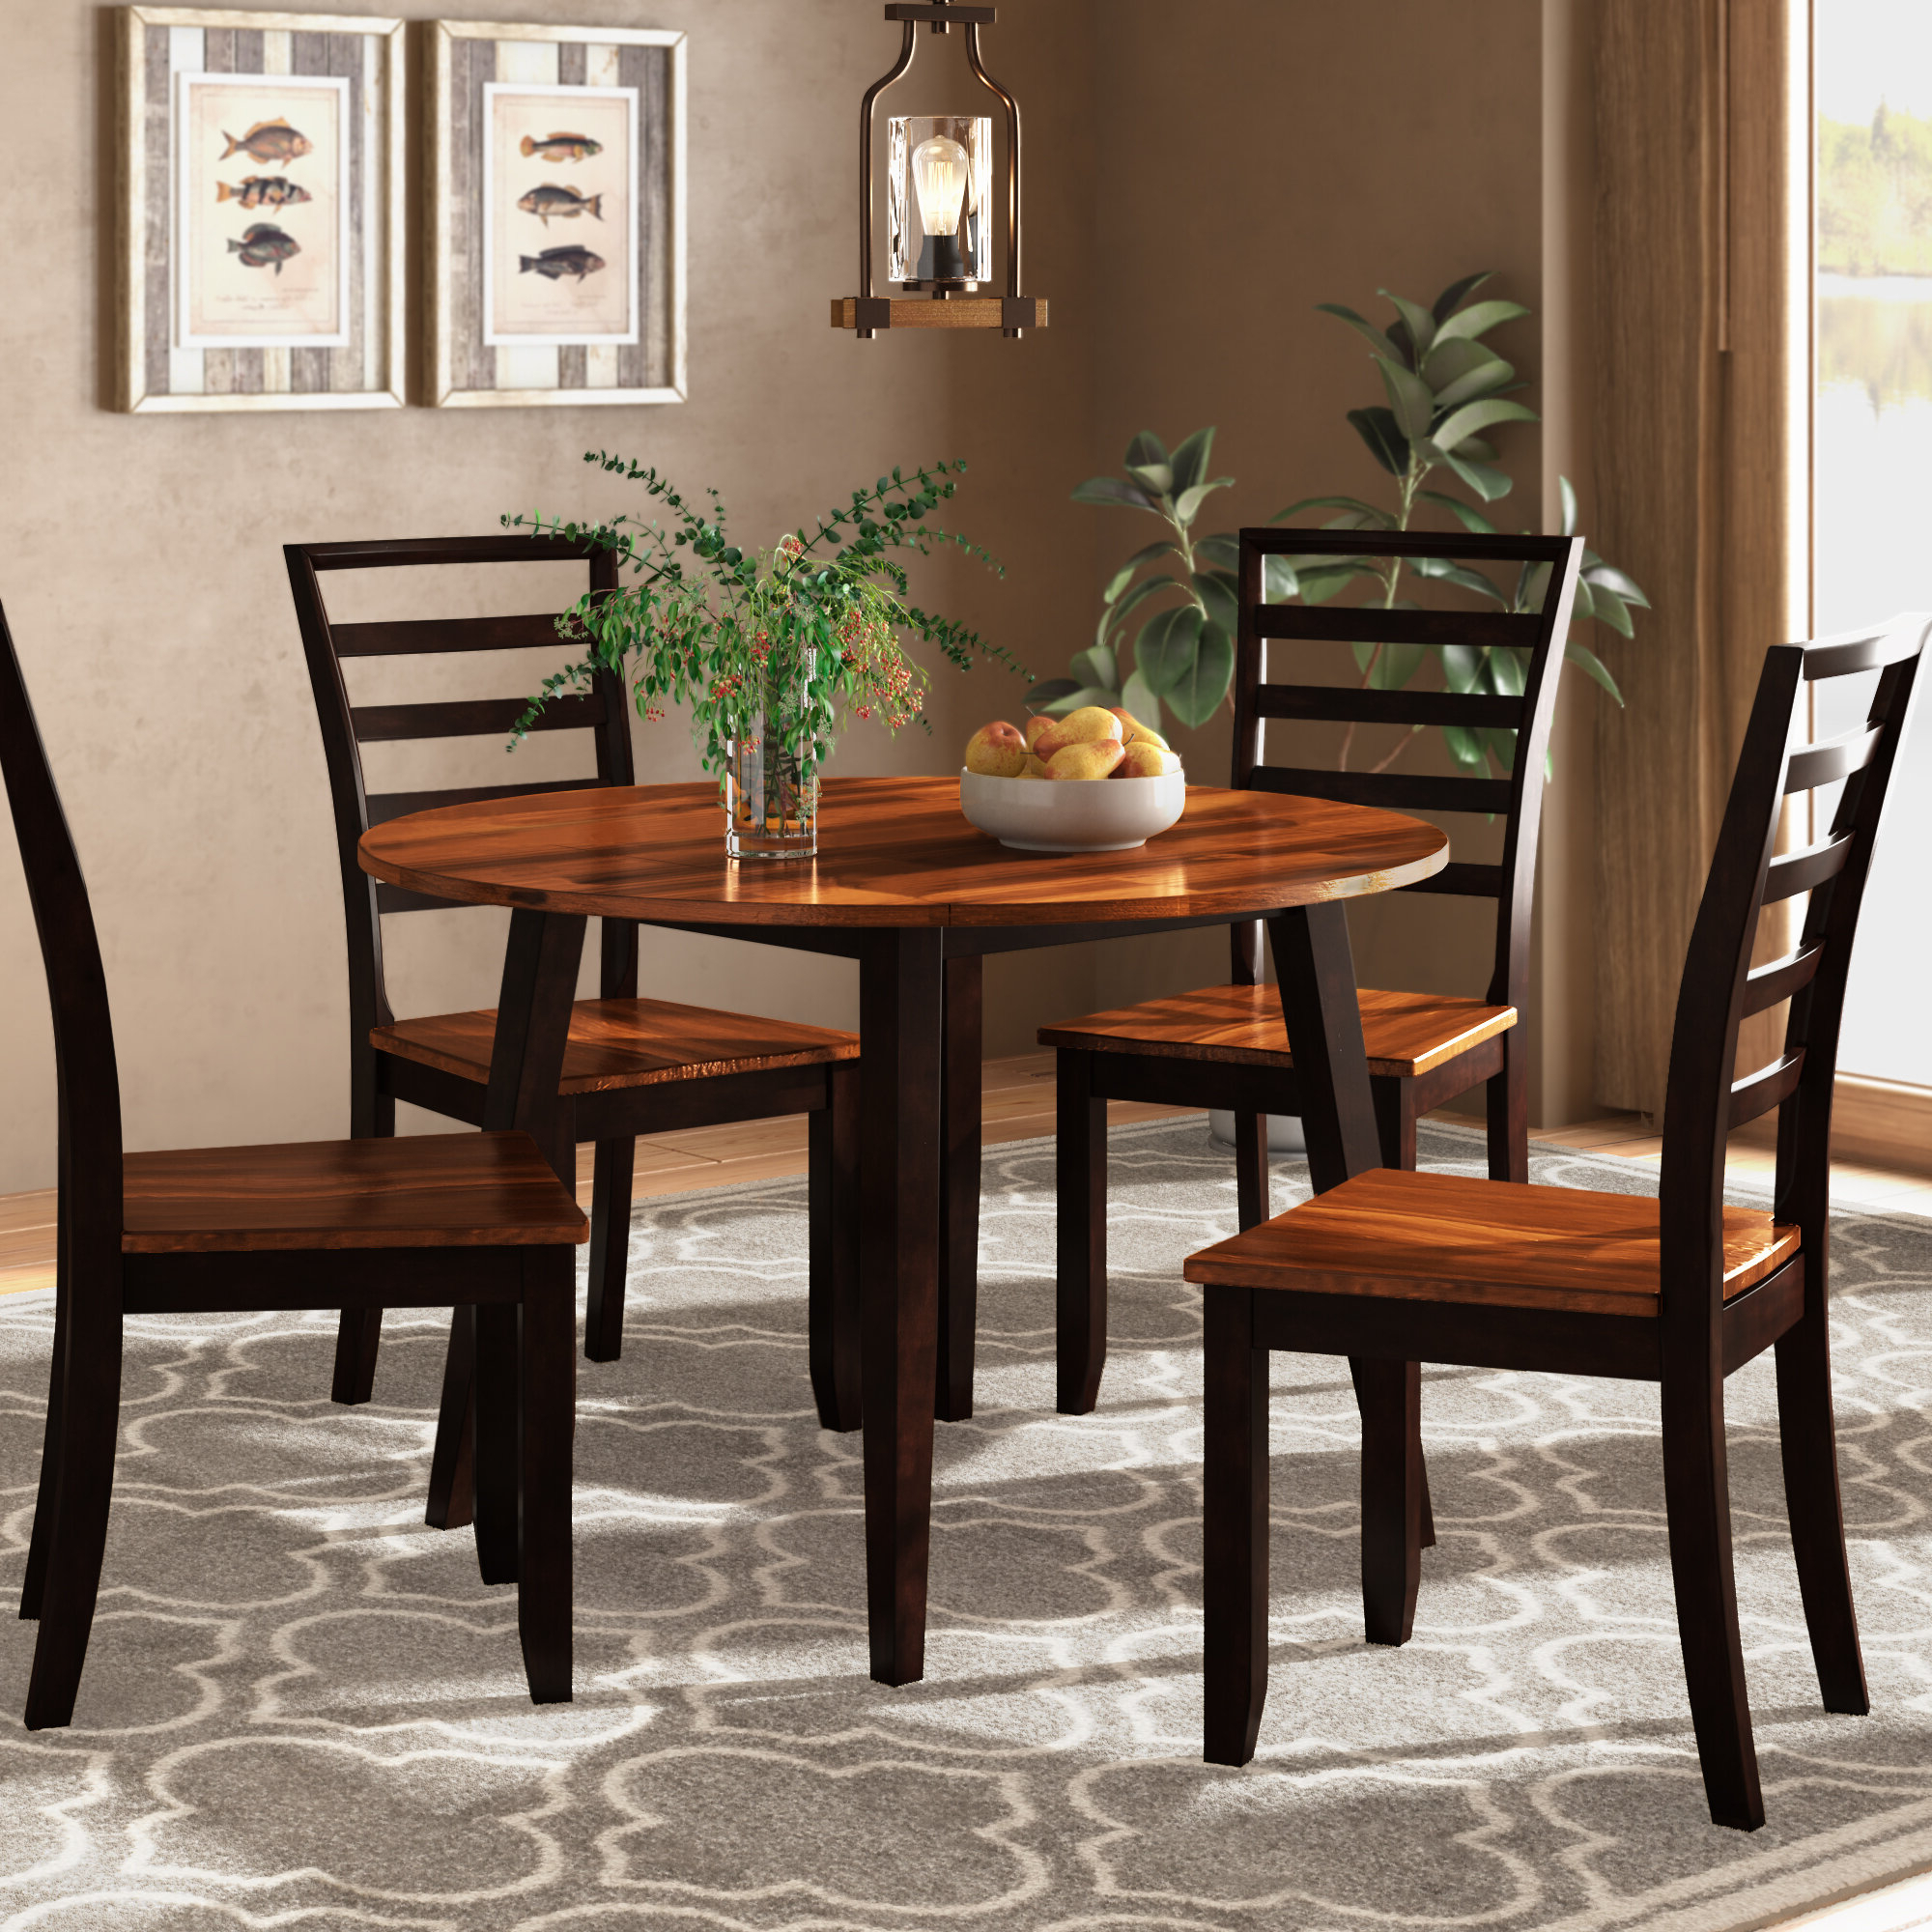 Latest Millwood Pines Hidalgo 5 Piece Drop Leaf Solid Wood Breakfast Nook Within 5 Piece Breakfast Nook Dining Sets (View 21 of 25)